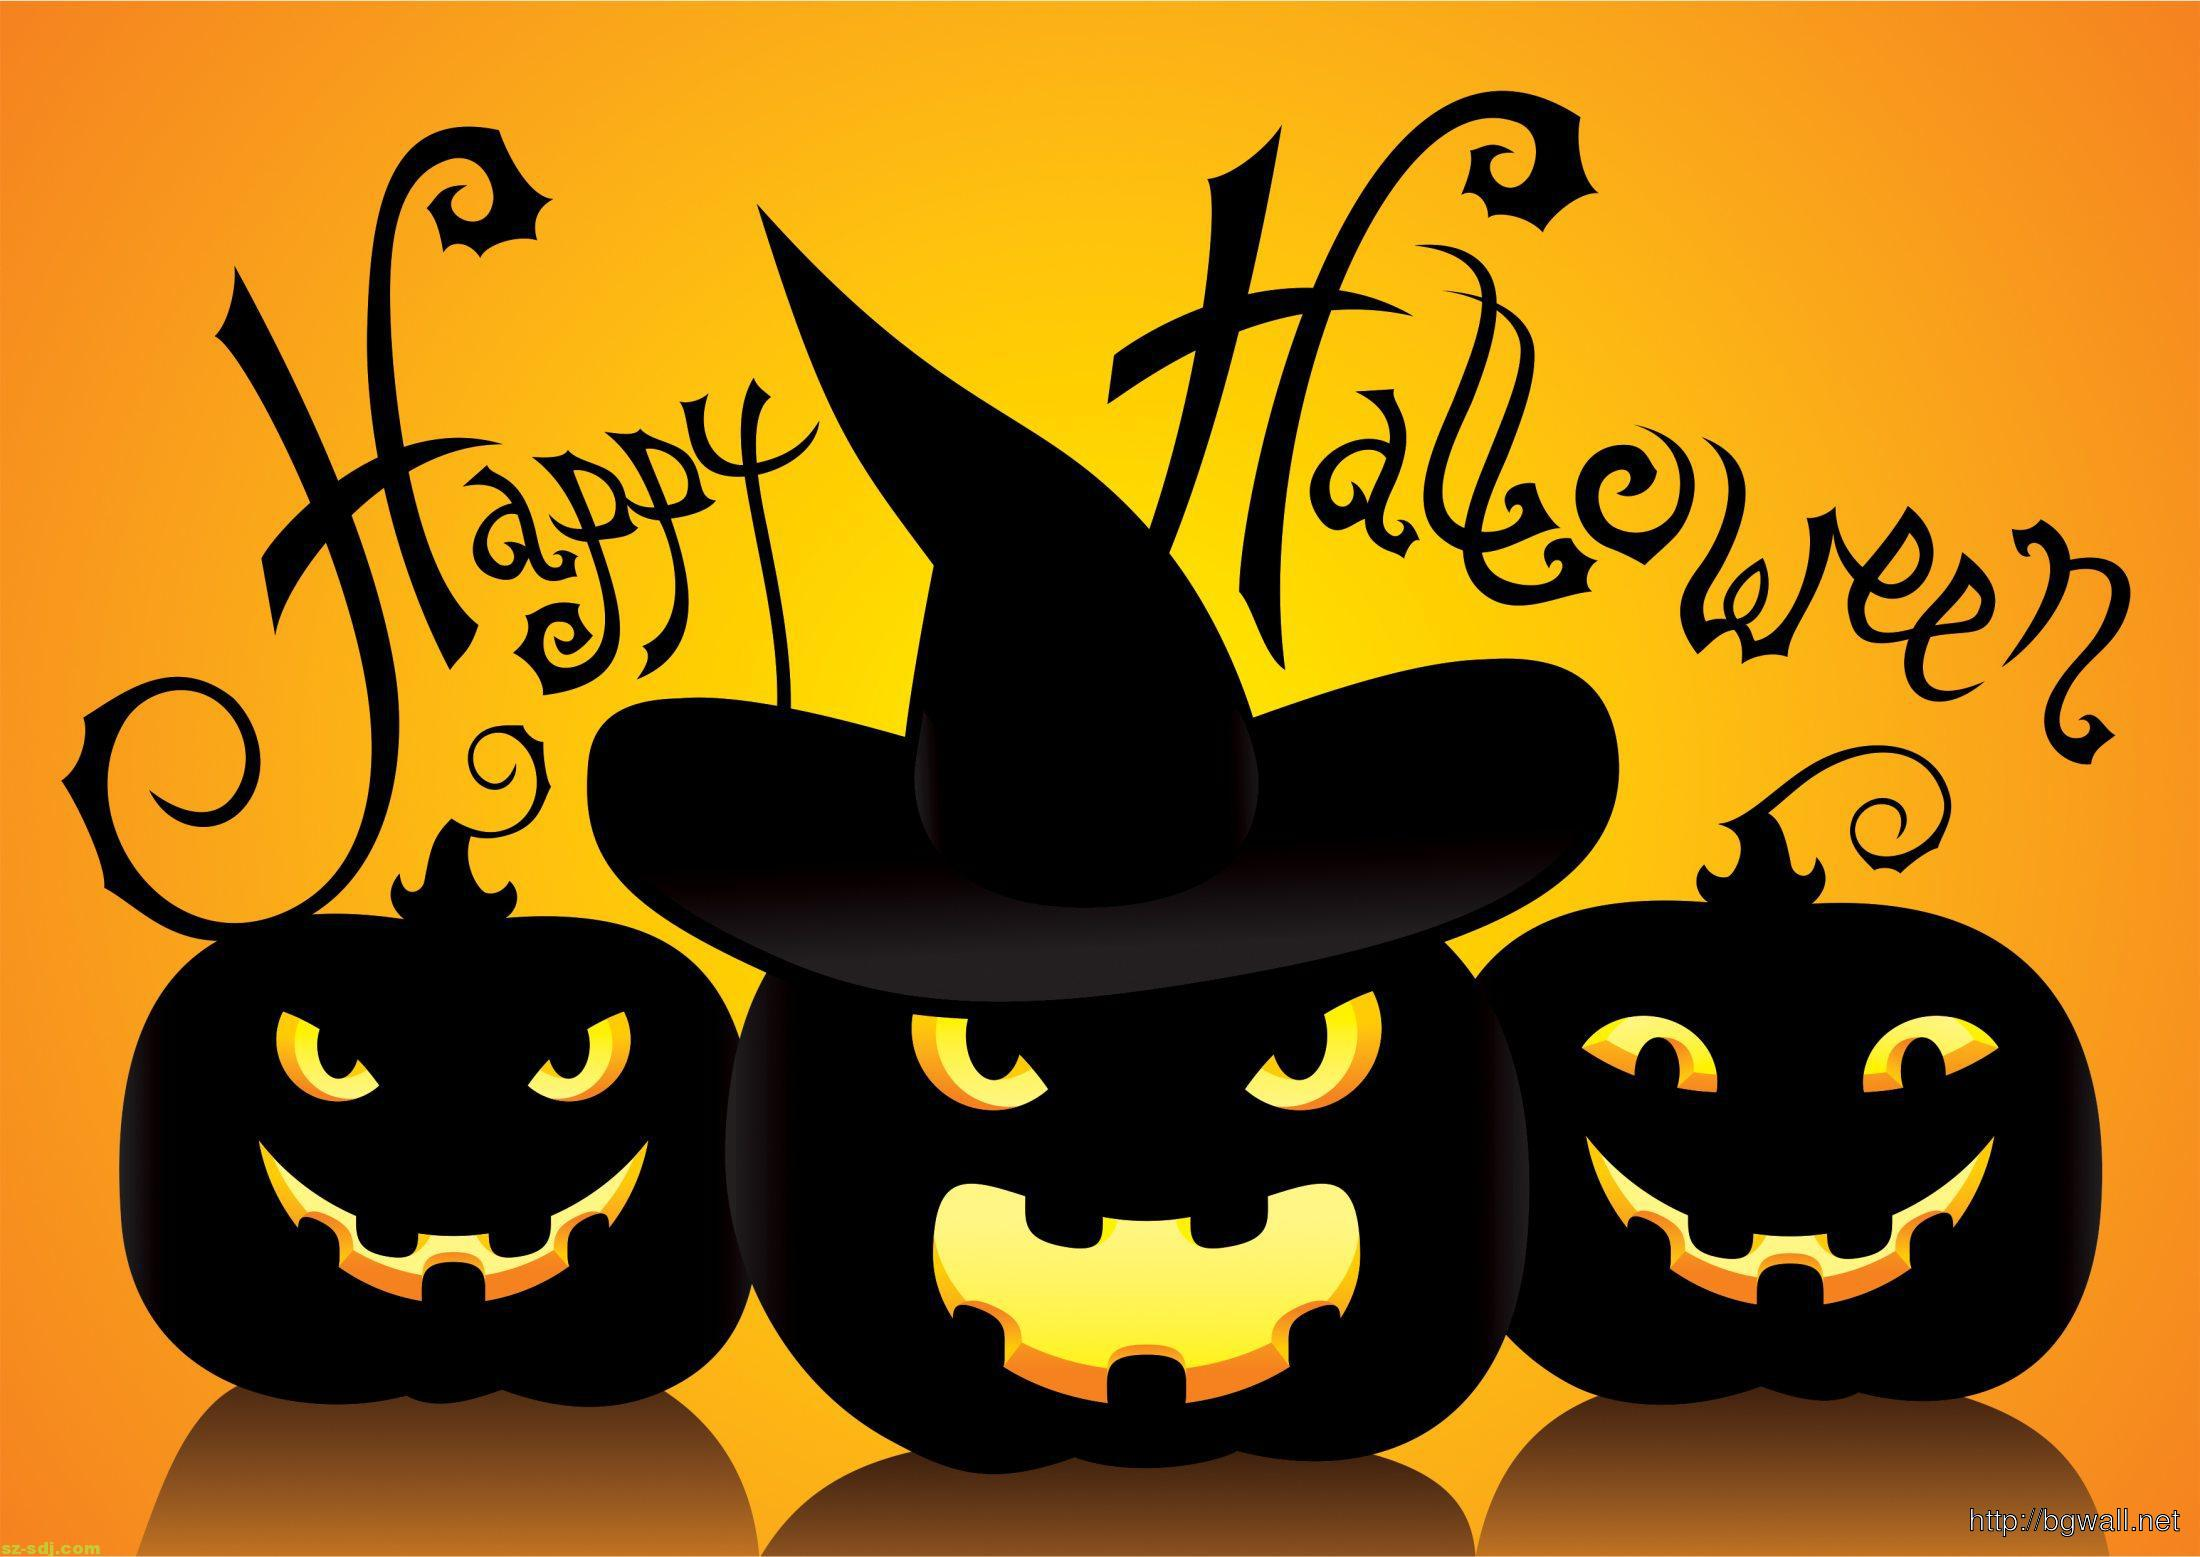 Wonderful Wallpaper High Resolution Halloween - happy-halloween-wallpaper-high-definition  Picture_682472.jpg